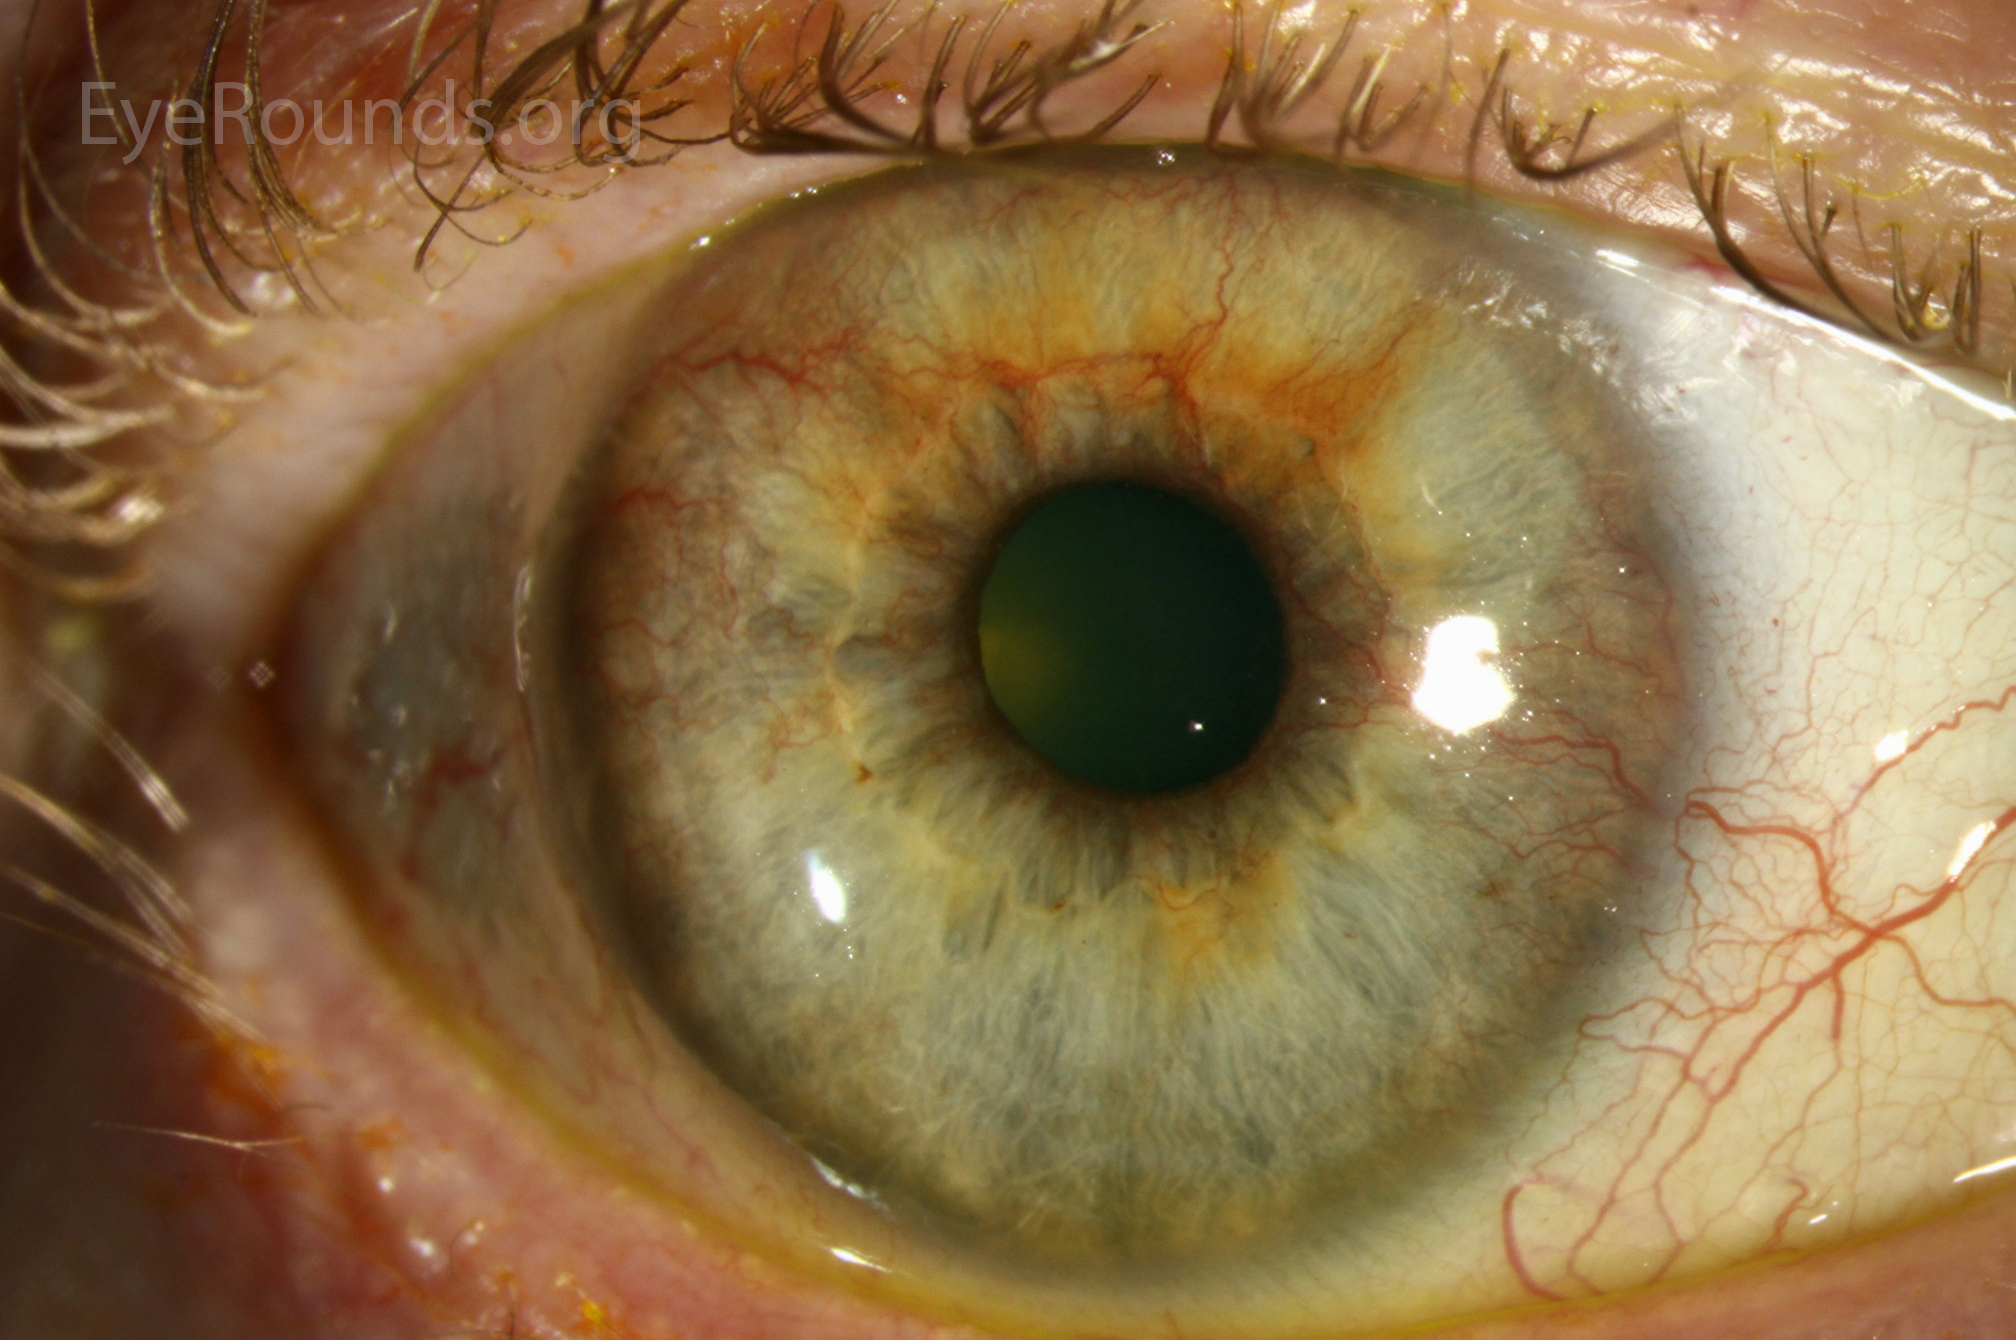 intravitreal steroid implant